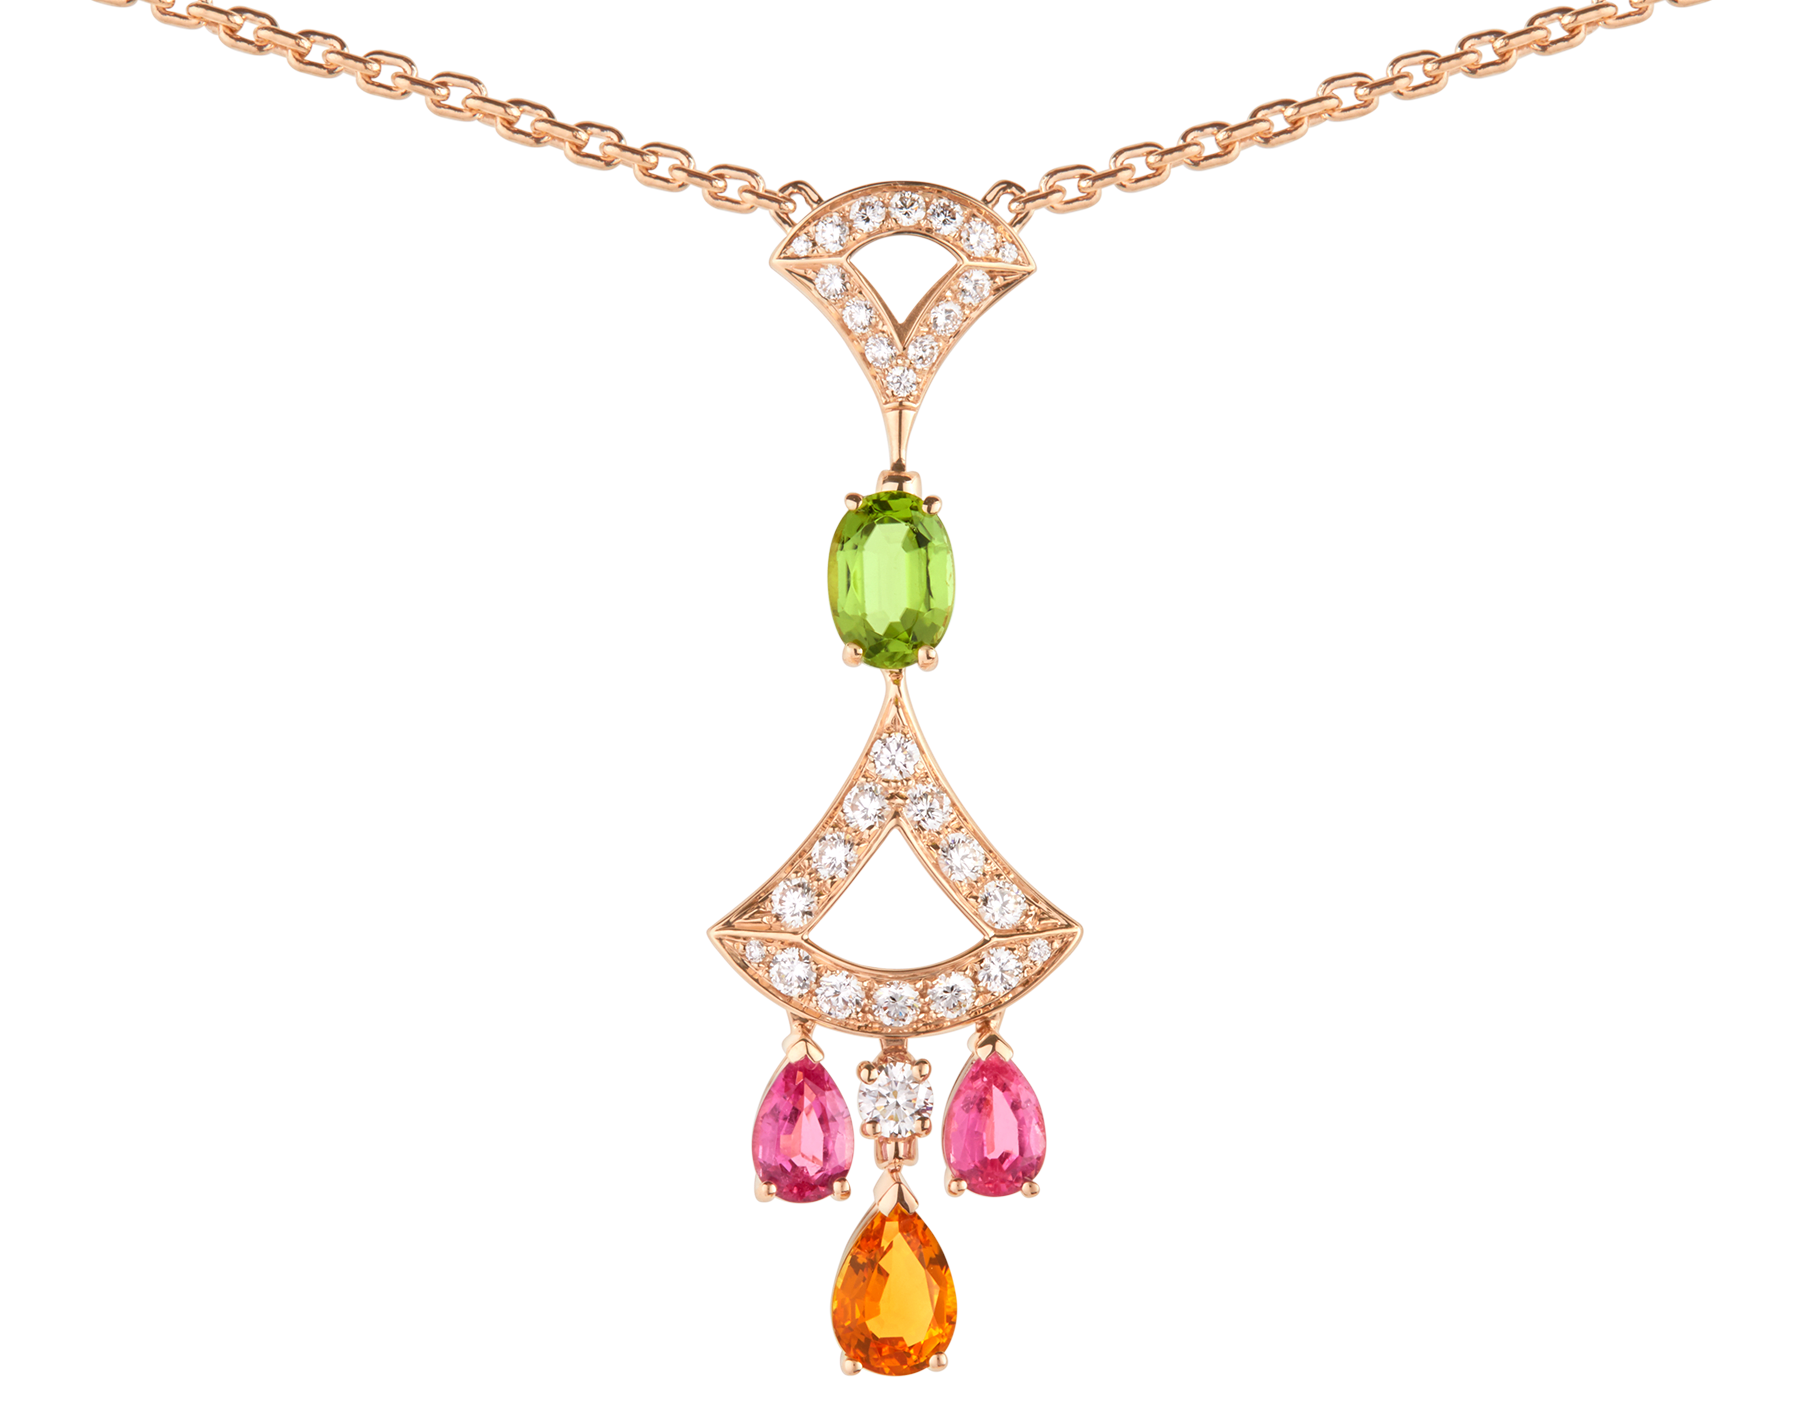 DIVAS' DREAM 18 kt rose gold necklace set with coloured gemstones, a brlliant-cut diamond and pavé diamonds 355613 image 3